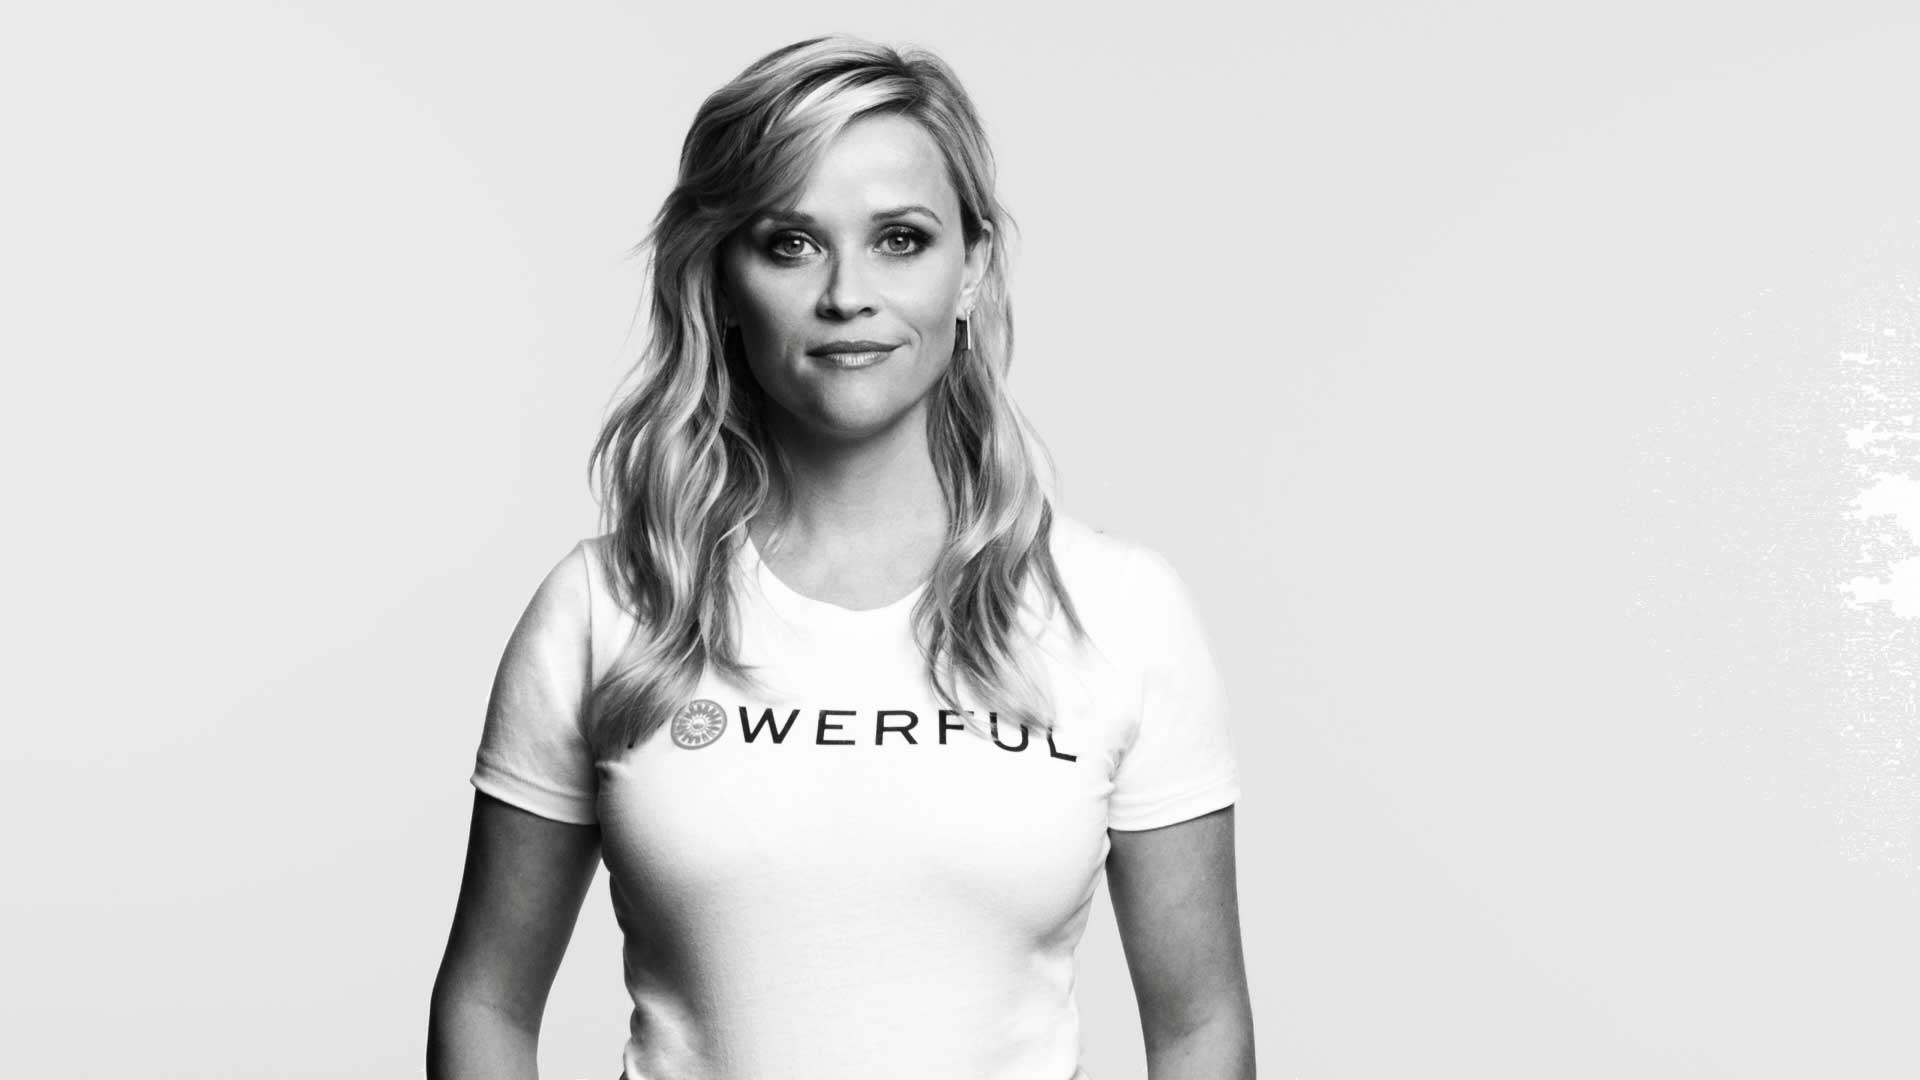 """I can think of a lot of dirty words - ambition is not one of them,"" Reese Witherspoon says as part of the Tory Burch Foundation's PSA video that asks women to Embrace Ambition on International Women's Day."